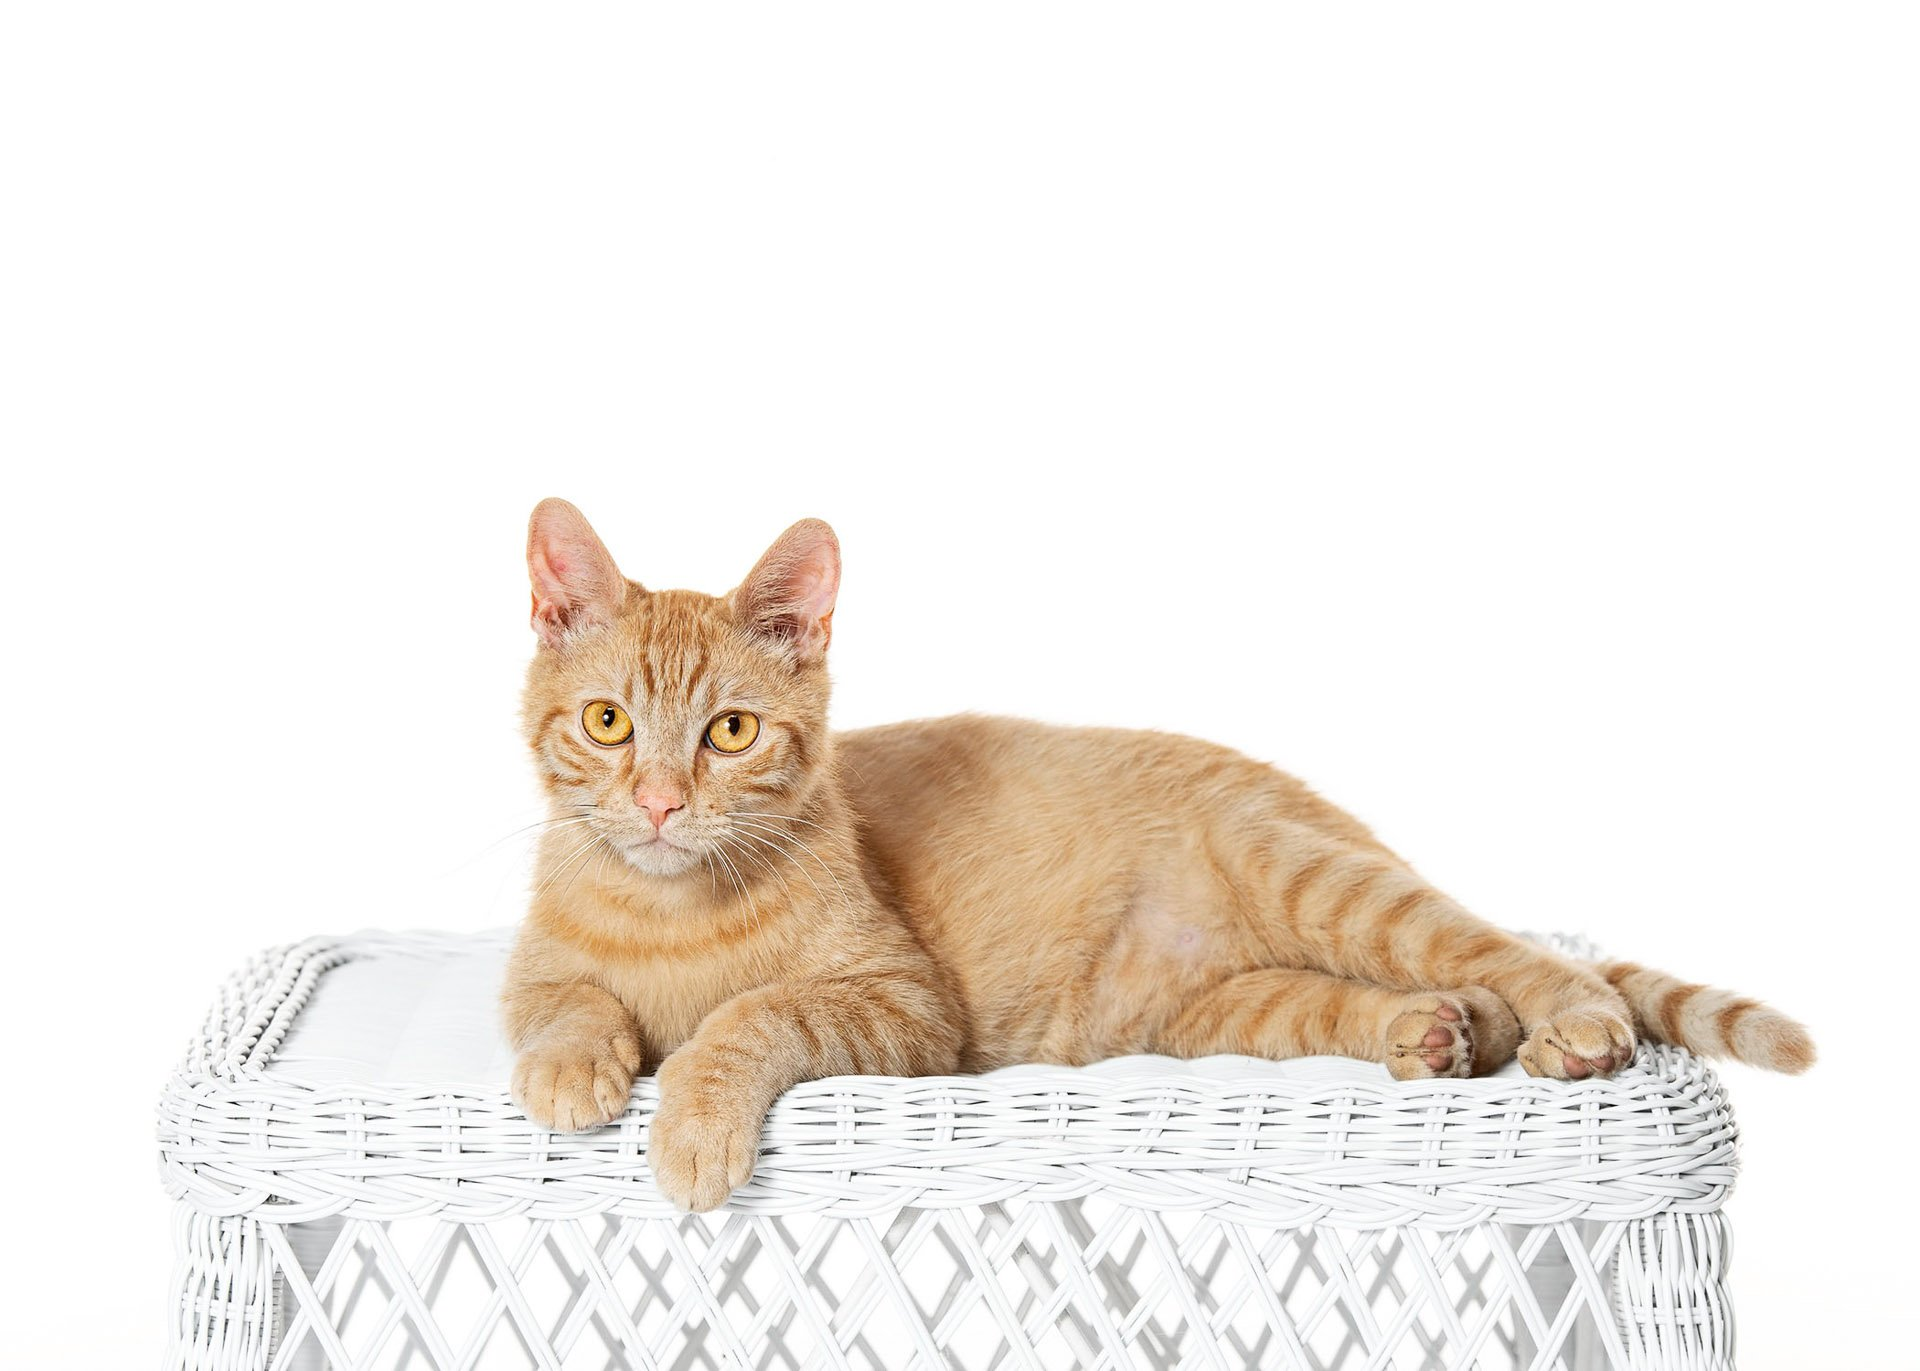 cat-domestic-shorthair-cream-tabby